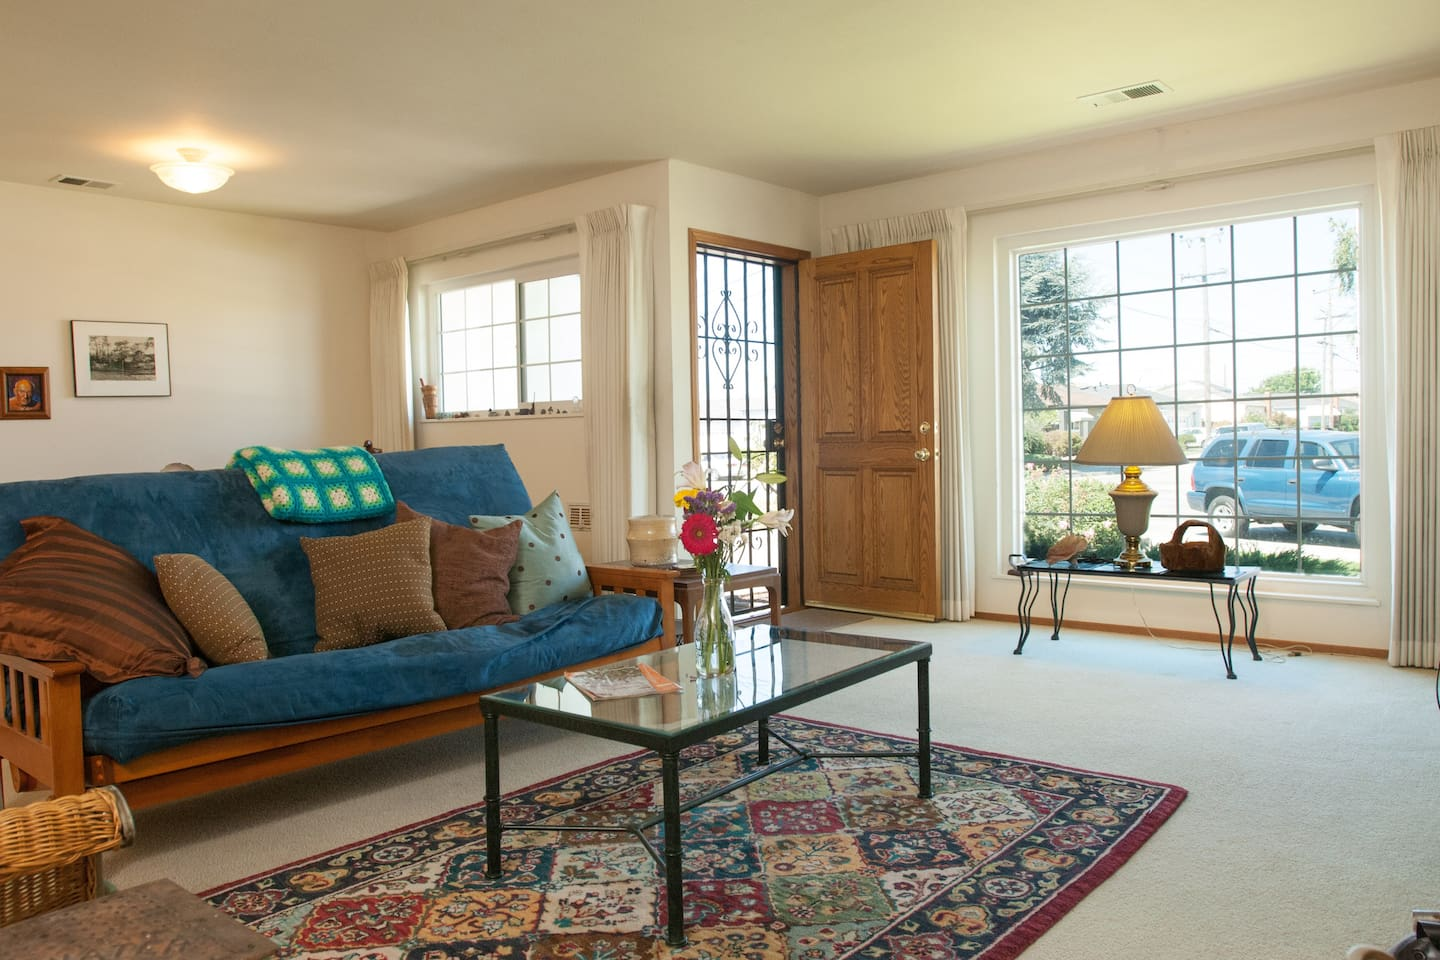 Great House in San Leandro-East Bay